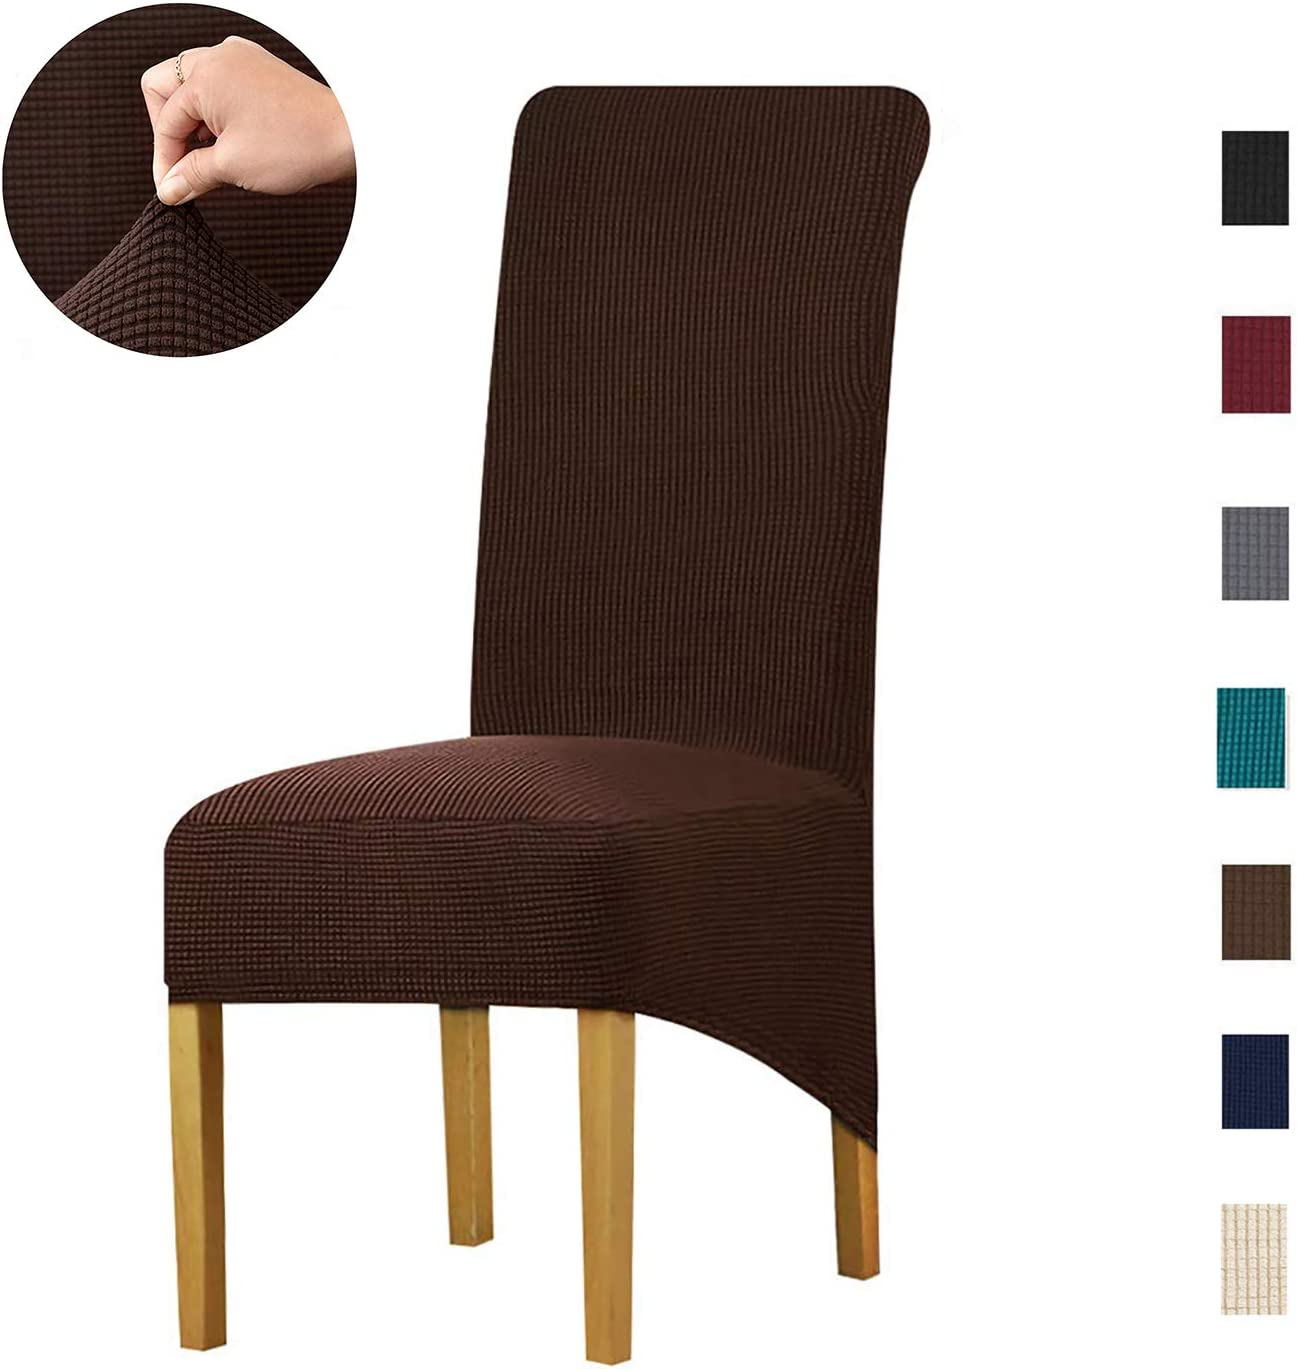 KELUINA Special XL Size Long Back Jacquard Stretch Dining Chair slipcovers - Spandex Plush Short Chair Covers Solid Large Dining Room Chair Protector Home Decor Set of 4(Coffee)